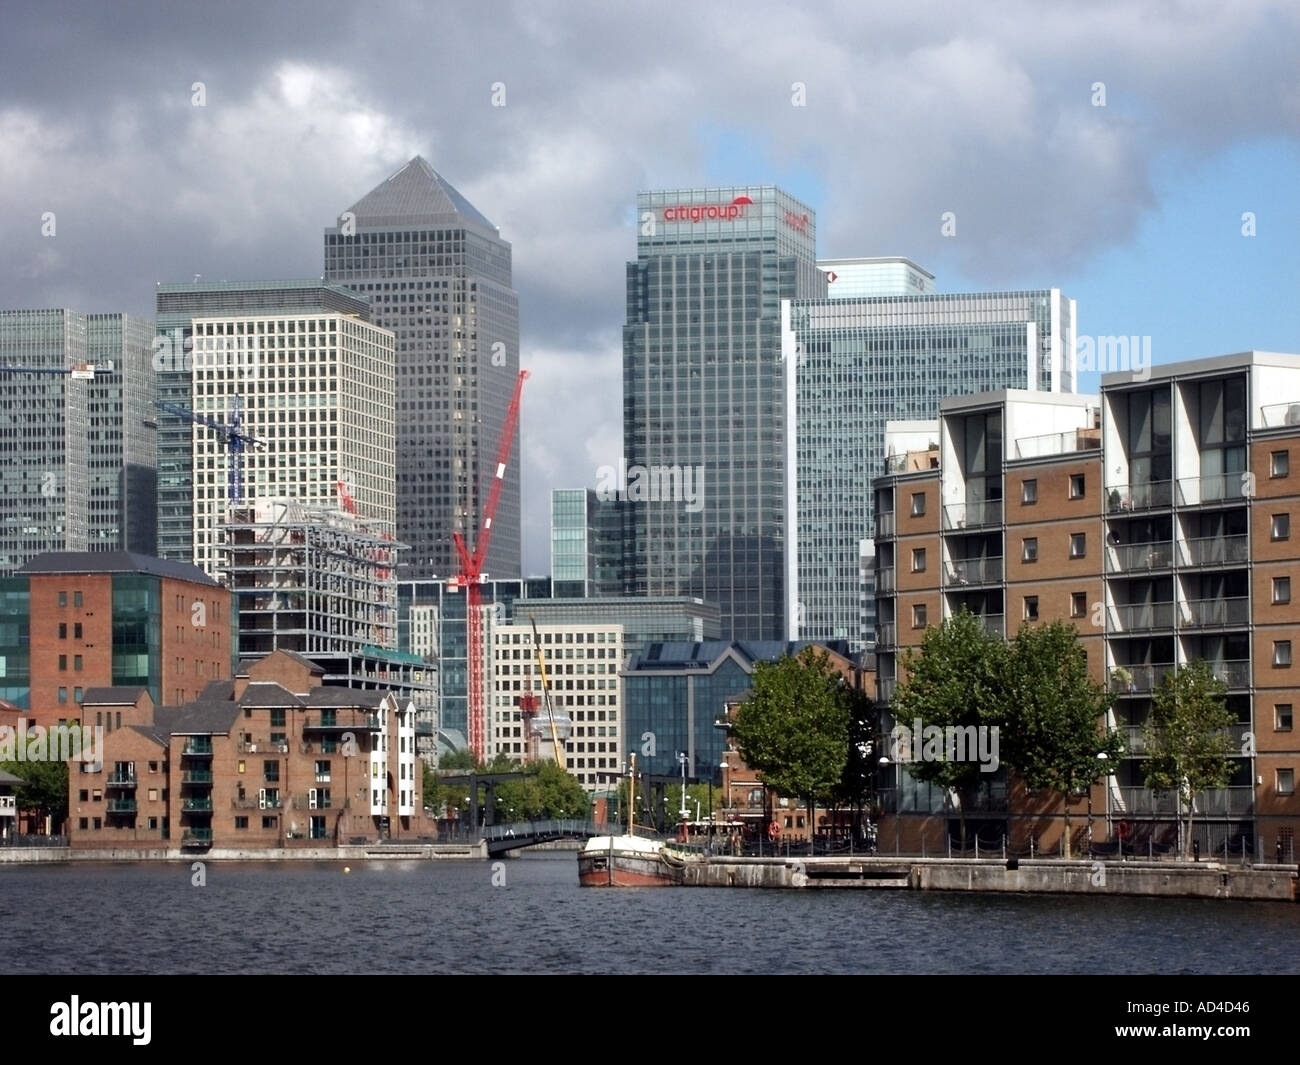 Docklands East London skyline including Canary Wharf tower and Citigroup building with Millwall outer dock waters - Stock Image